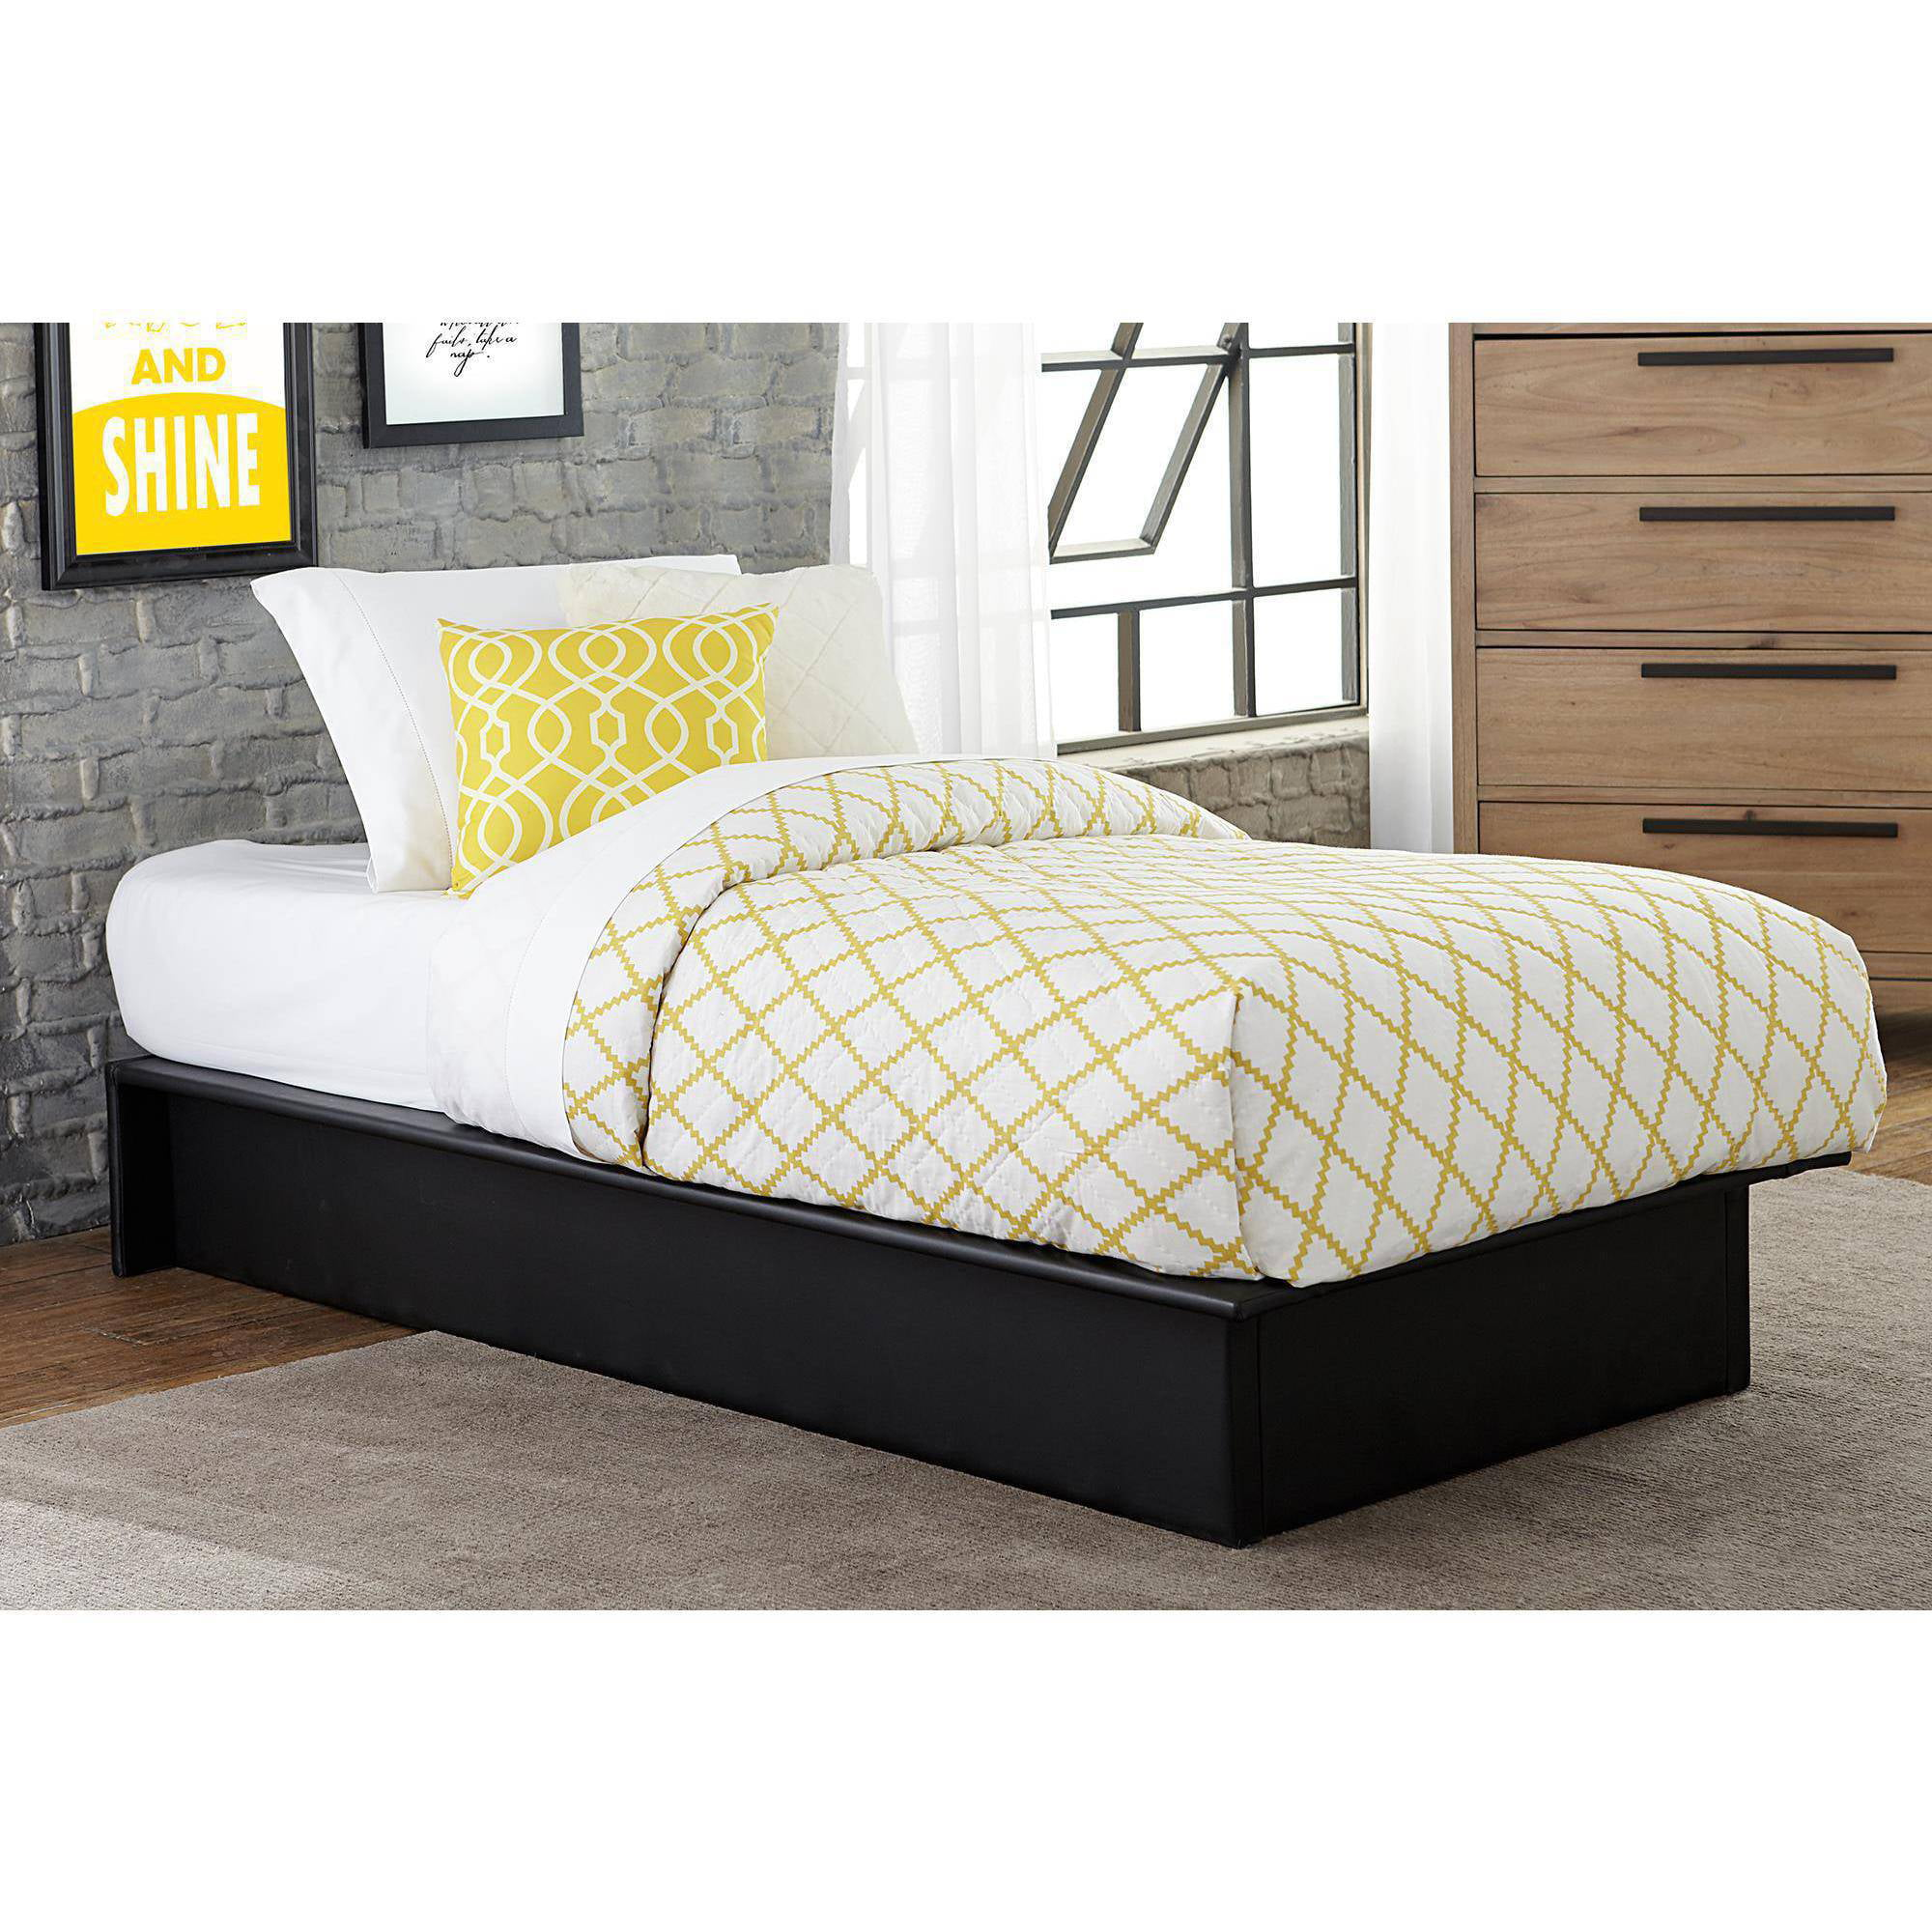 maven upholstered faux leather platform bed black multiple sizes walmartcom